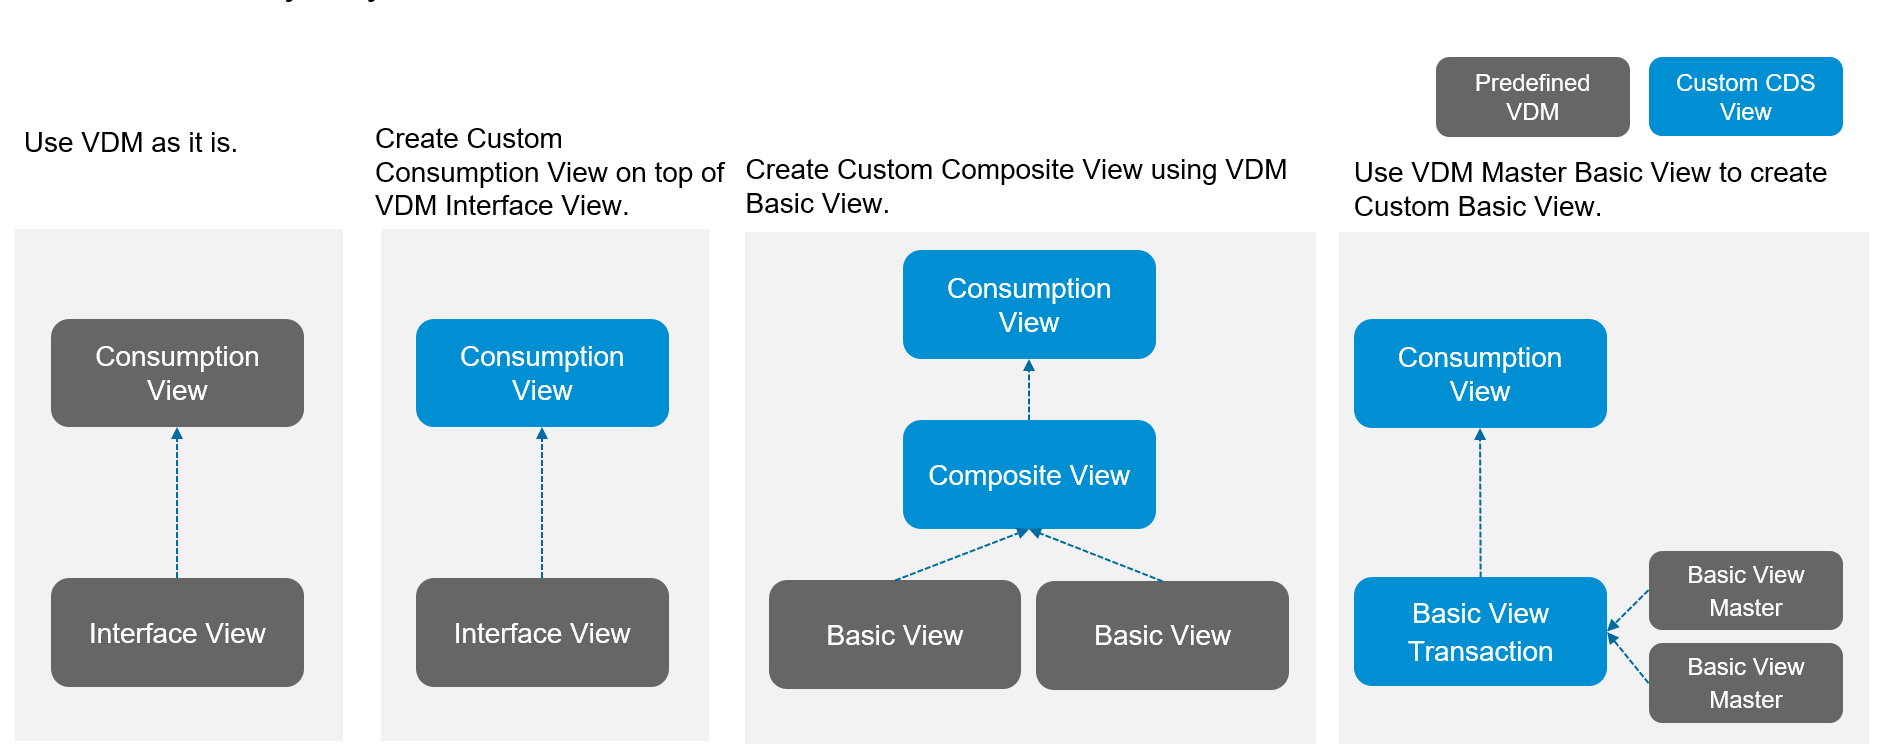 Example: Custom CDS View using predefined Virtual Data Model and